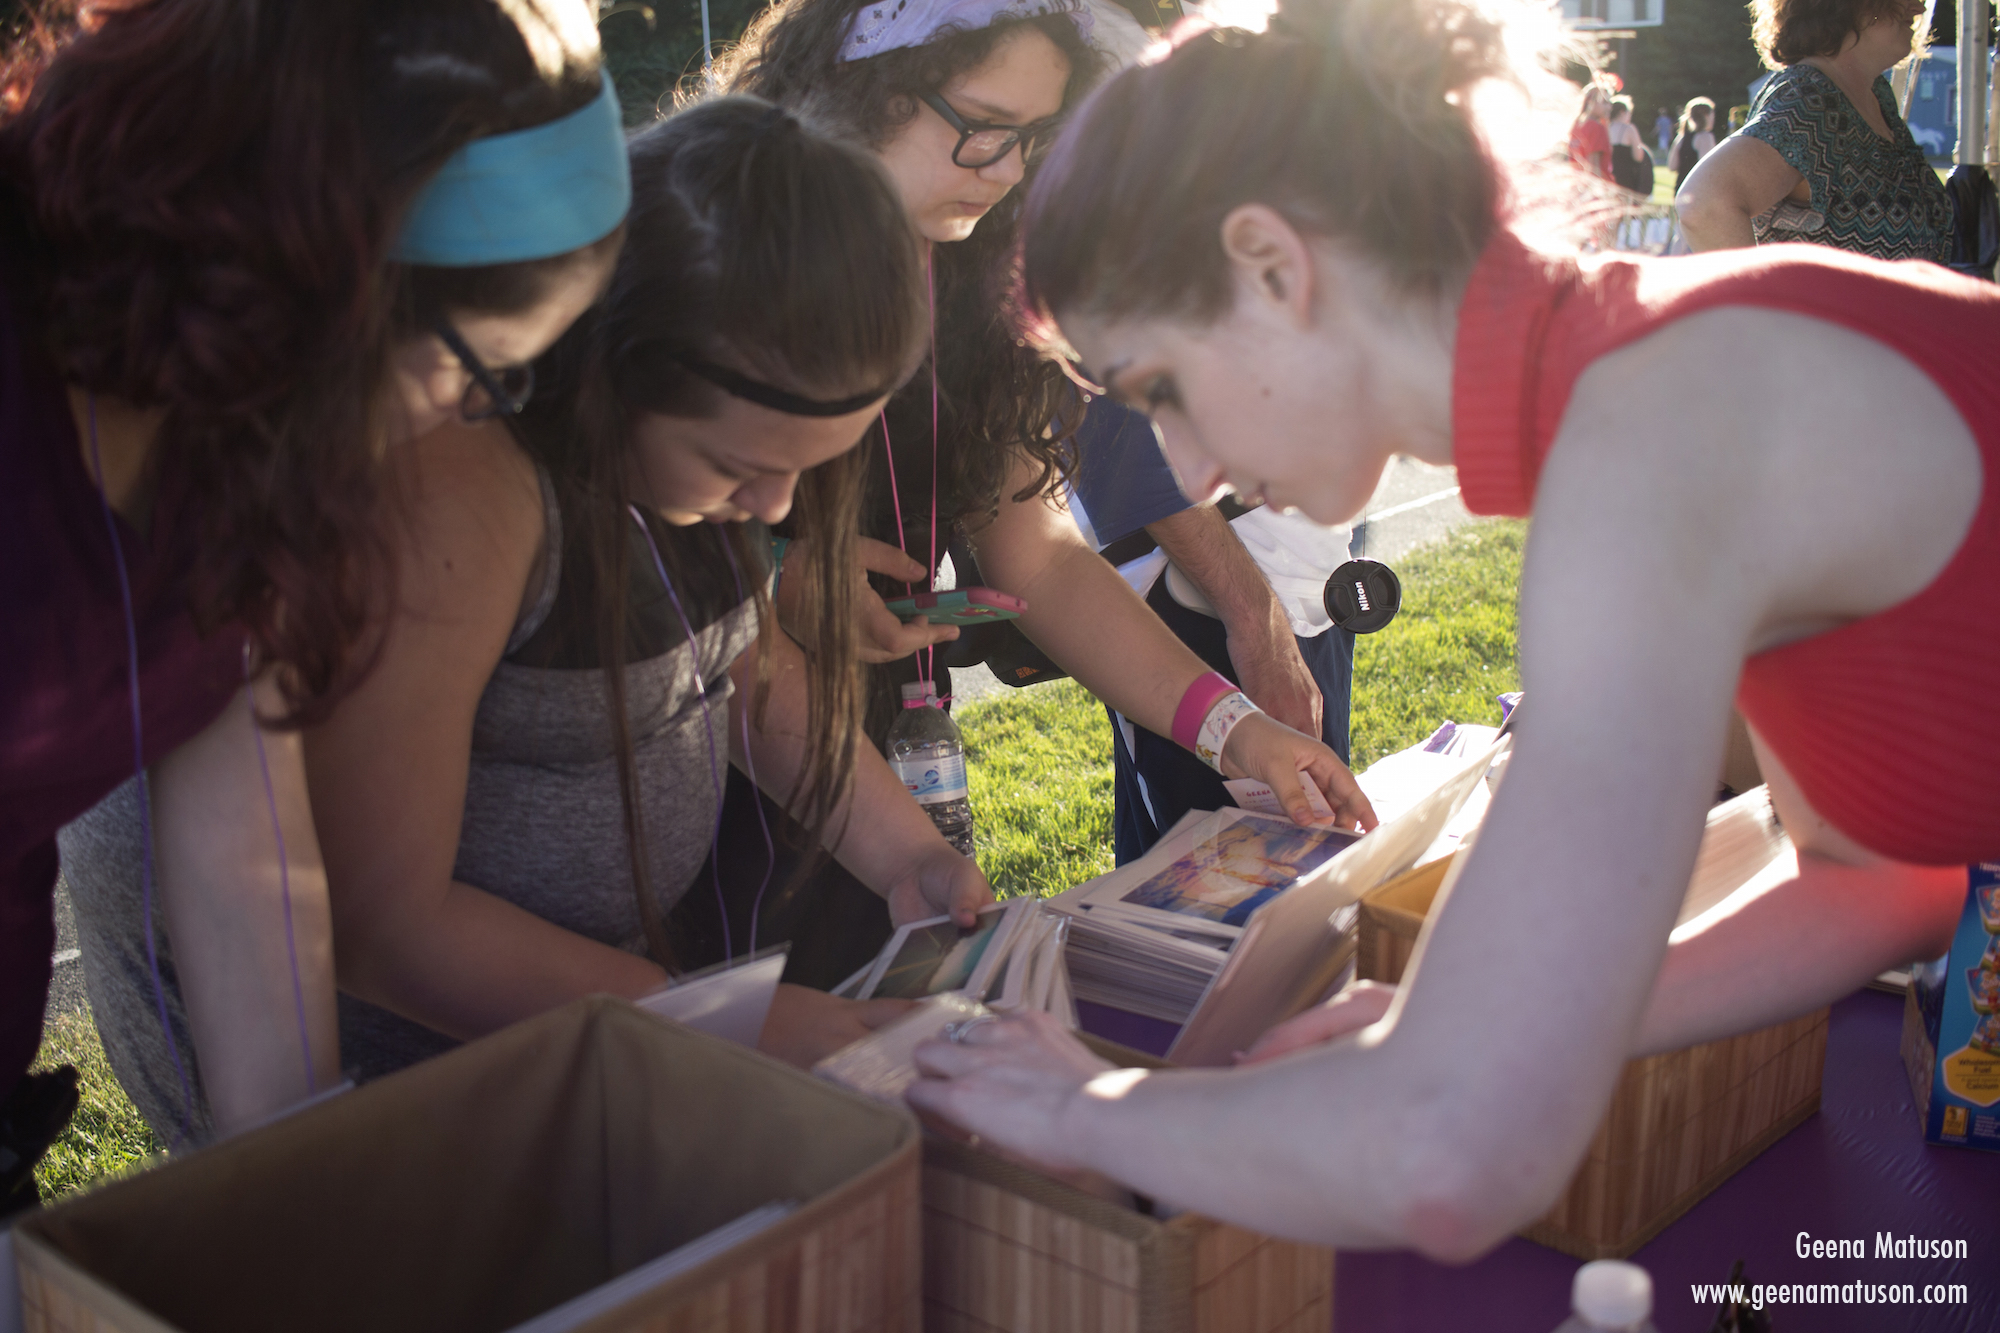 Relay walkers look at Geena's art at Relay for Life in Medway, MA 2016. Photography by Joe Musacchia.